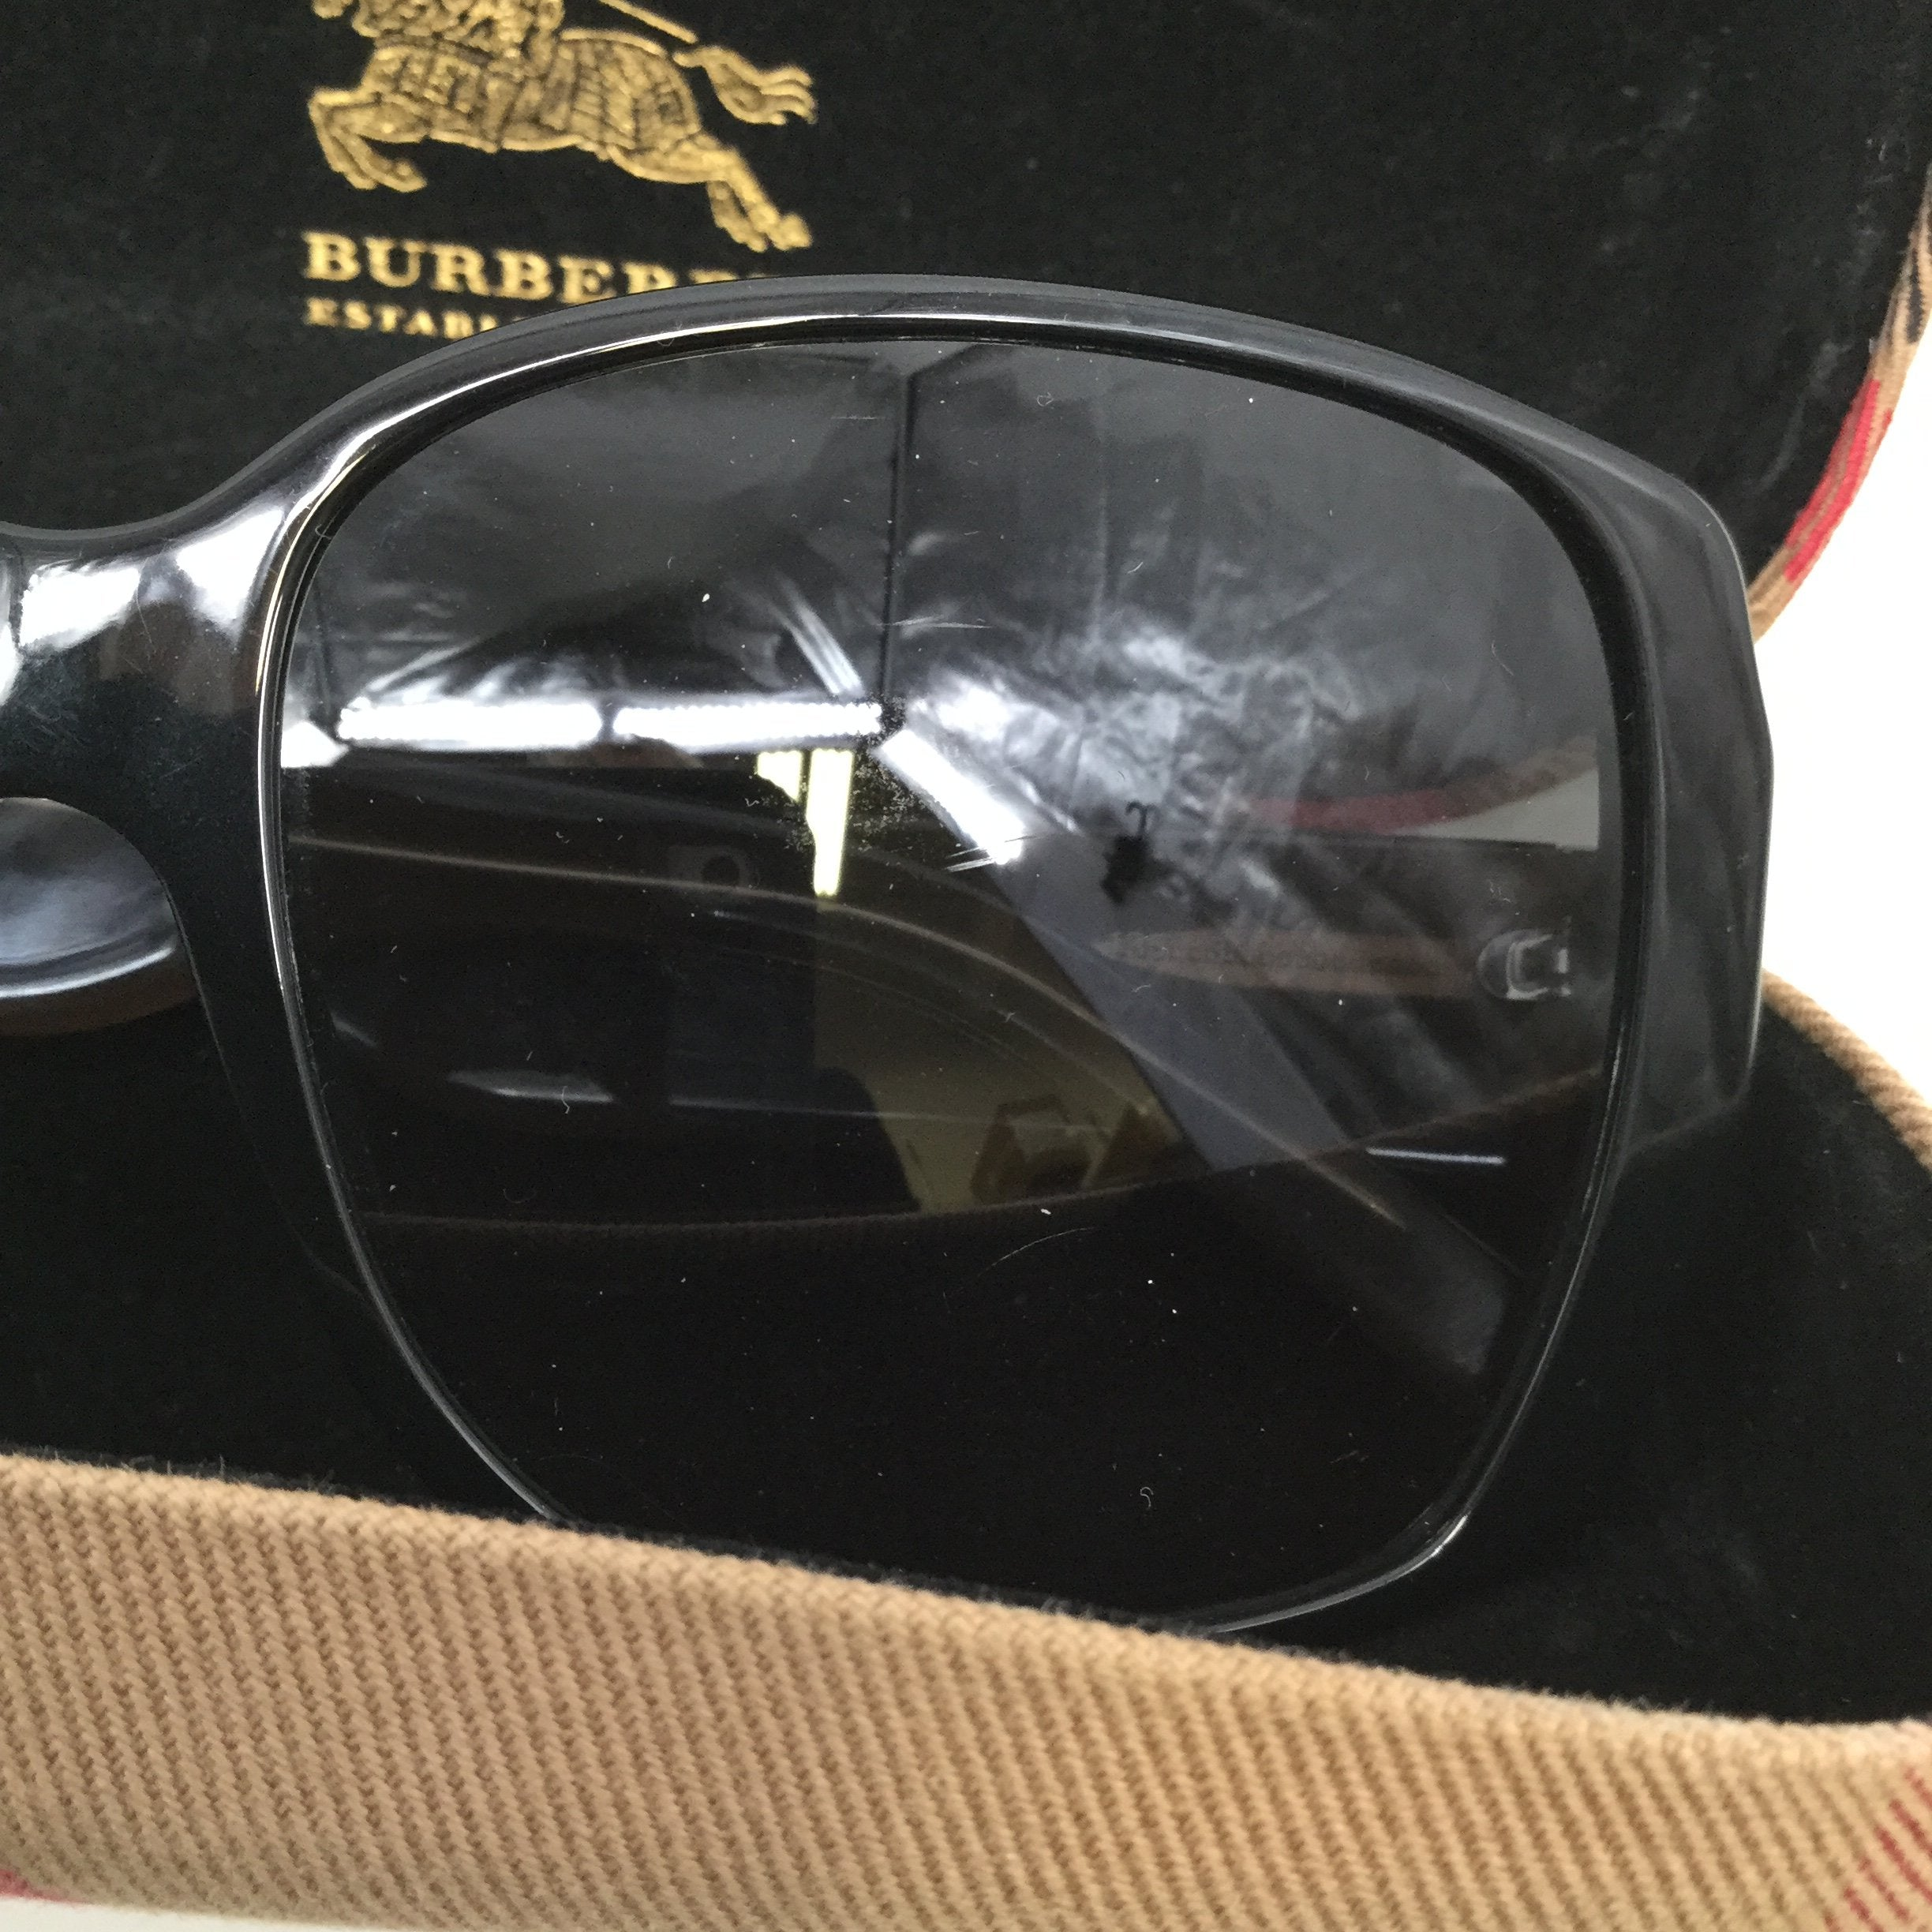 BURBERRY SUNGLASSES - <P>BLACK FRAMES WITH BROWN AND BLACK SIDES. STYLE B-4105M. SIZE 58-16-135. A FEW SCRATCHES CAN BE SEEN ON THE OUTSIDE OF THE LENSES BUT NOT FROM THE INSIDE.</P>